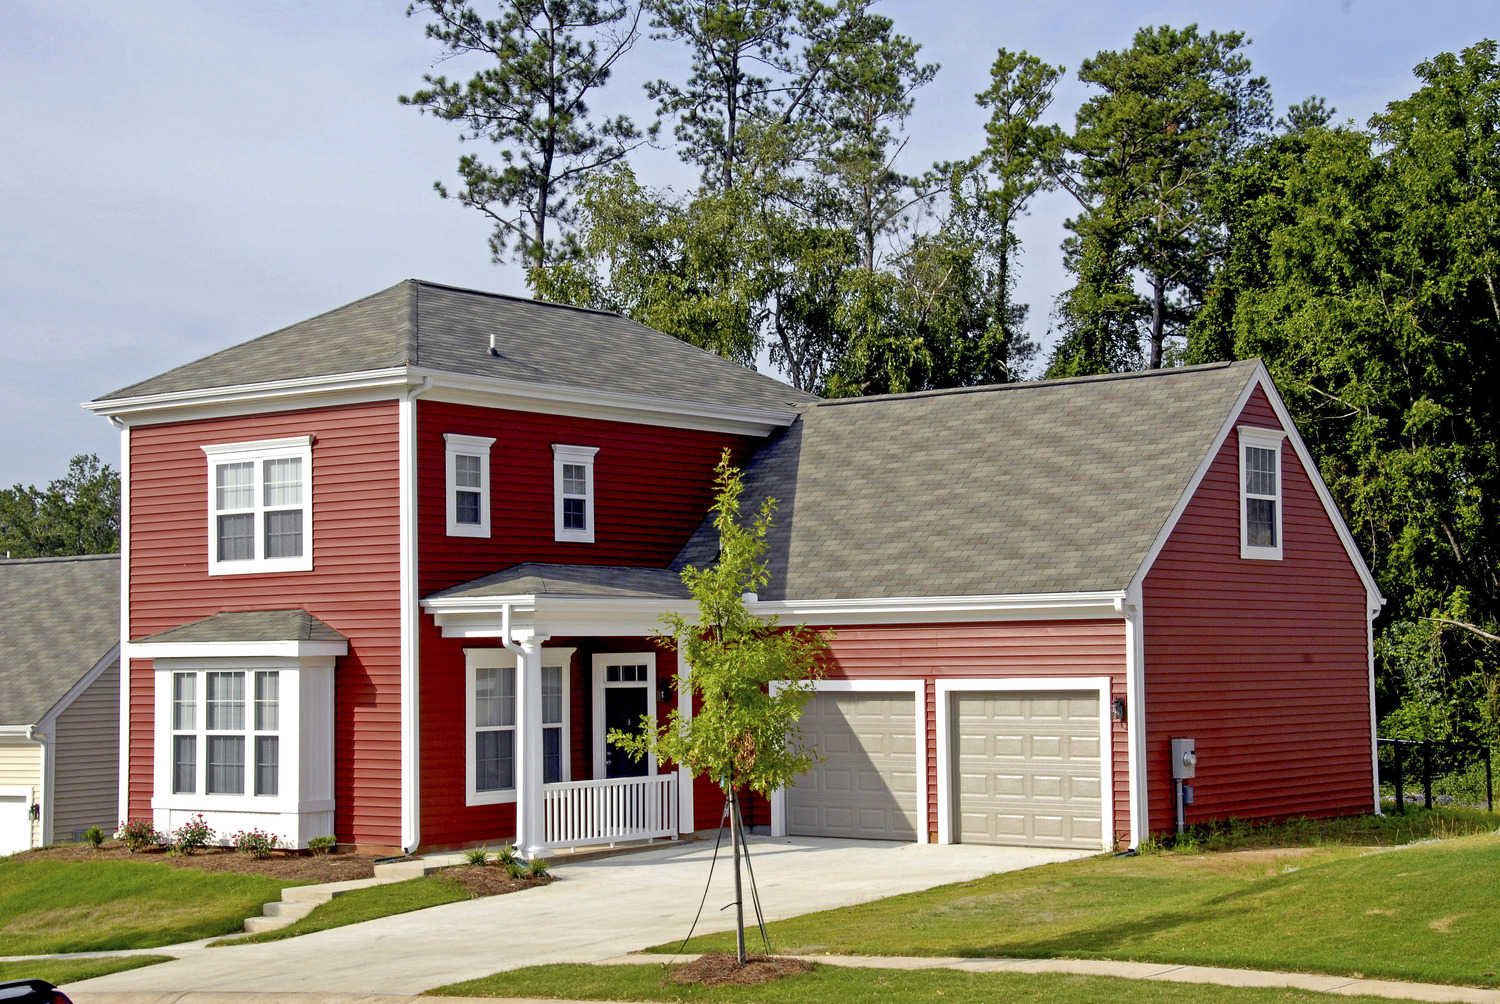 CBG builds Fort Benning Family Housing, a 3,667 Units of Housing for the Army in Fort Benning, GA - Image #2